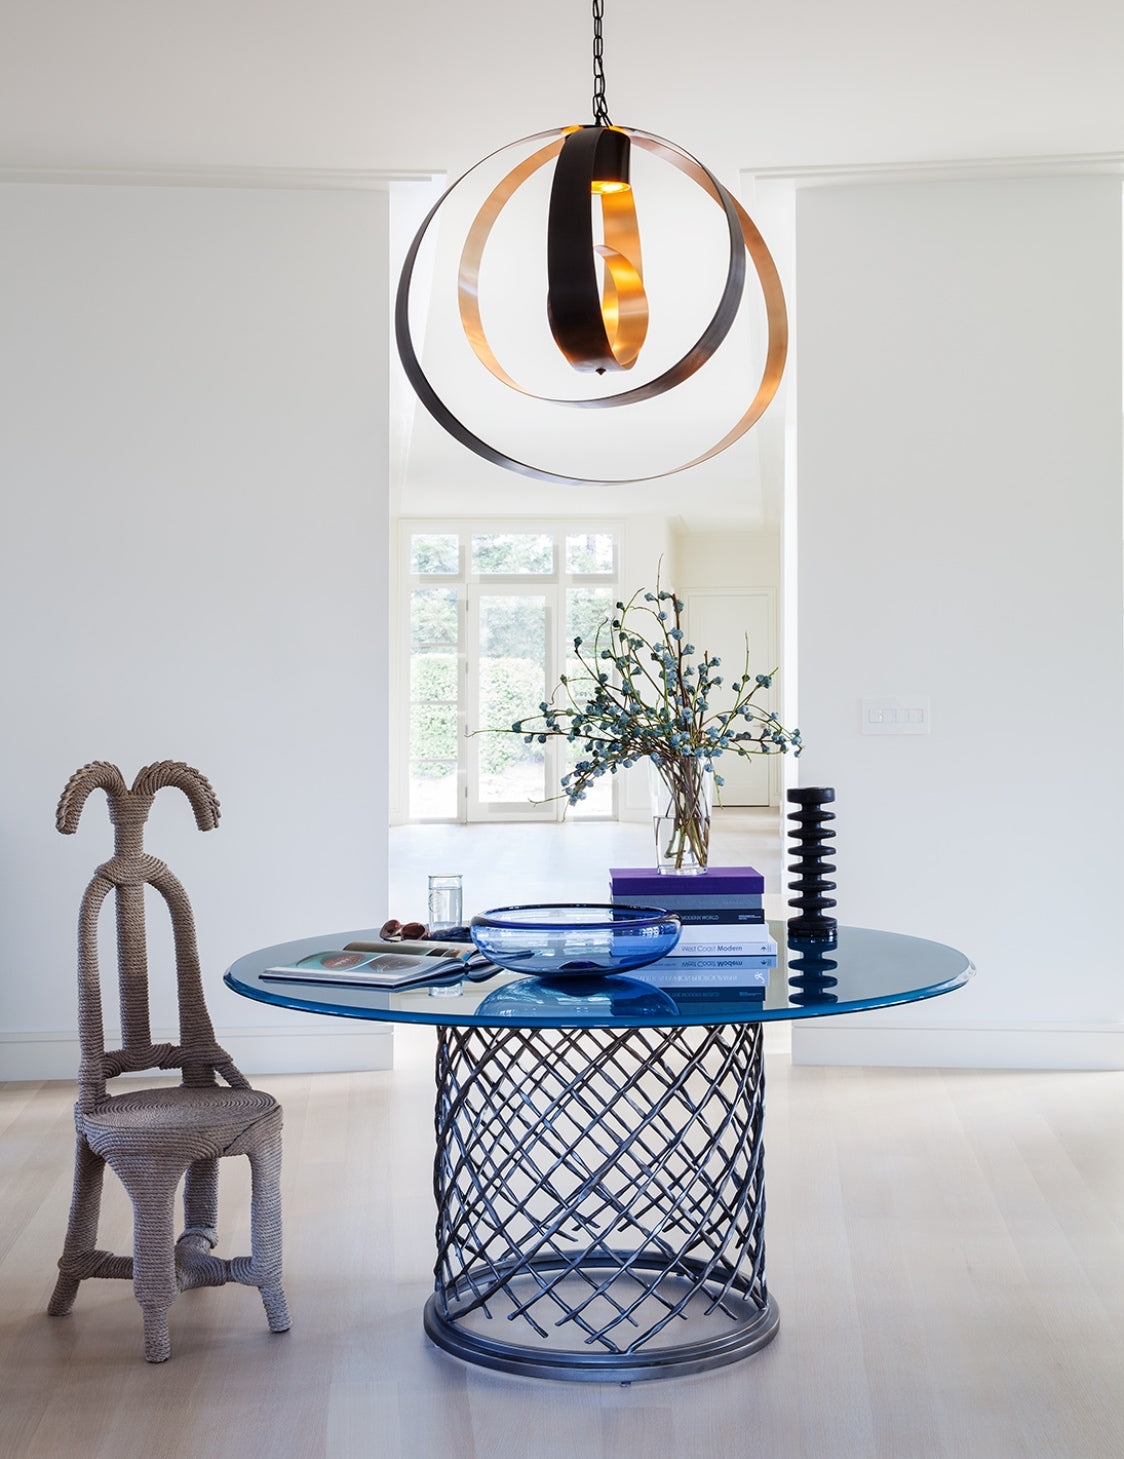 How To Style Your Round Entryway Table – Heather Hilliard – LuxDeco.com Style Guide